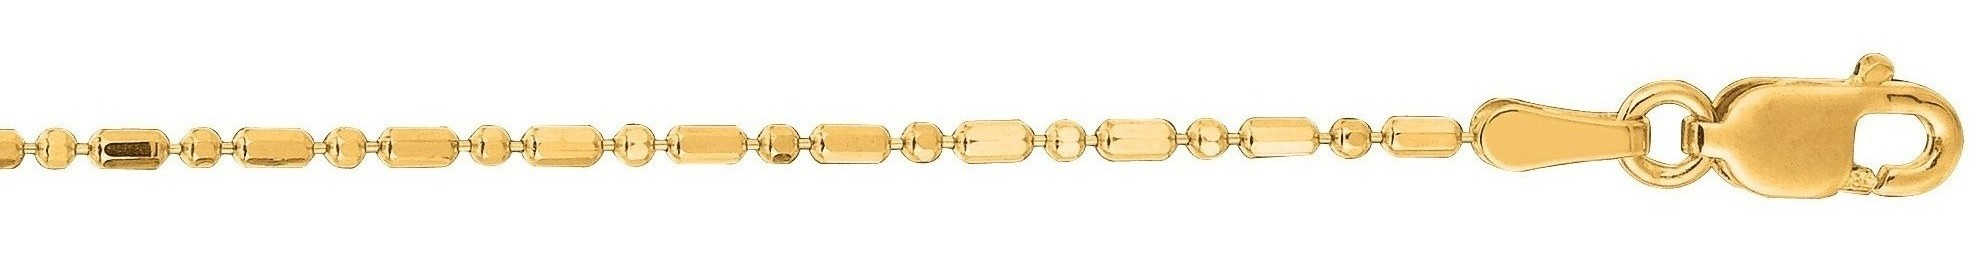 "20"" 14K Yellow Gold 1.2mm (0.05"") Diamond Cut Bead Chain w/ Lobster Clasp"